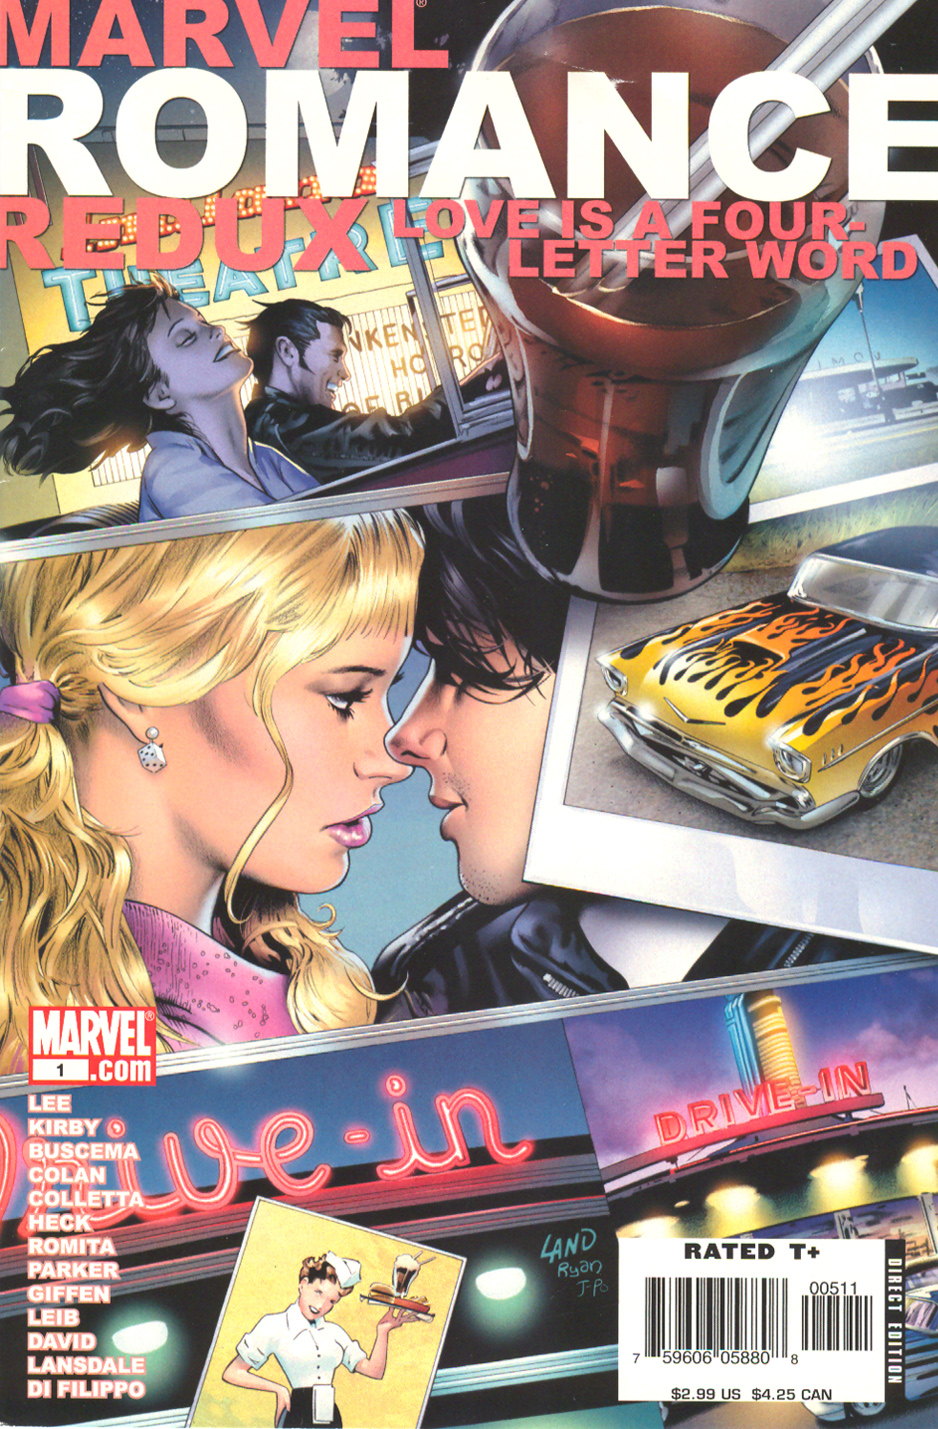 Marvel Romance Redux issue Love is a Four Letter Word from August of 2006